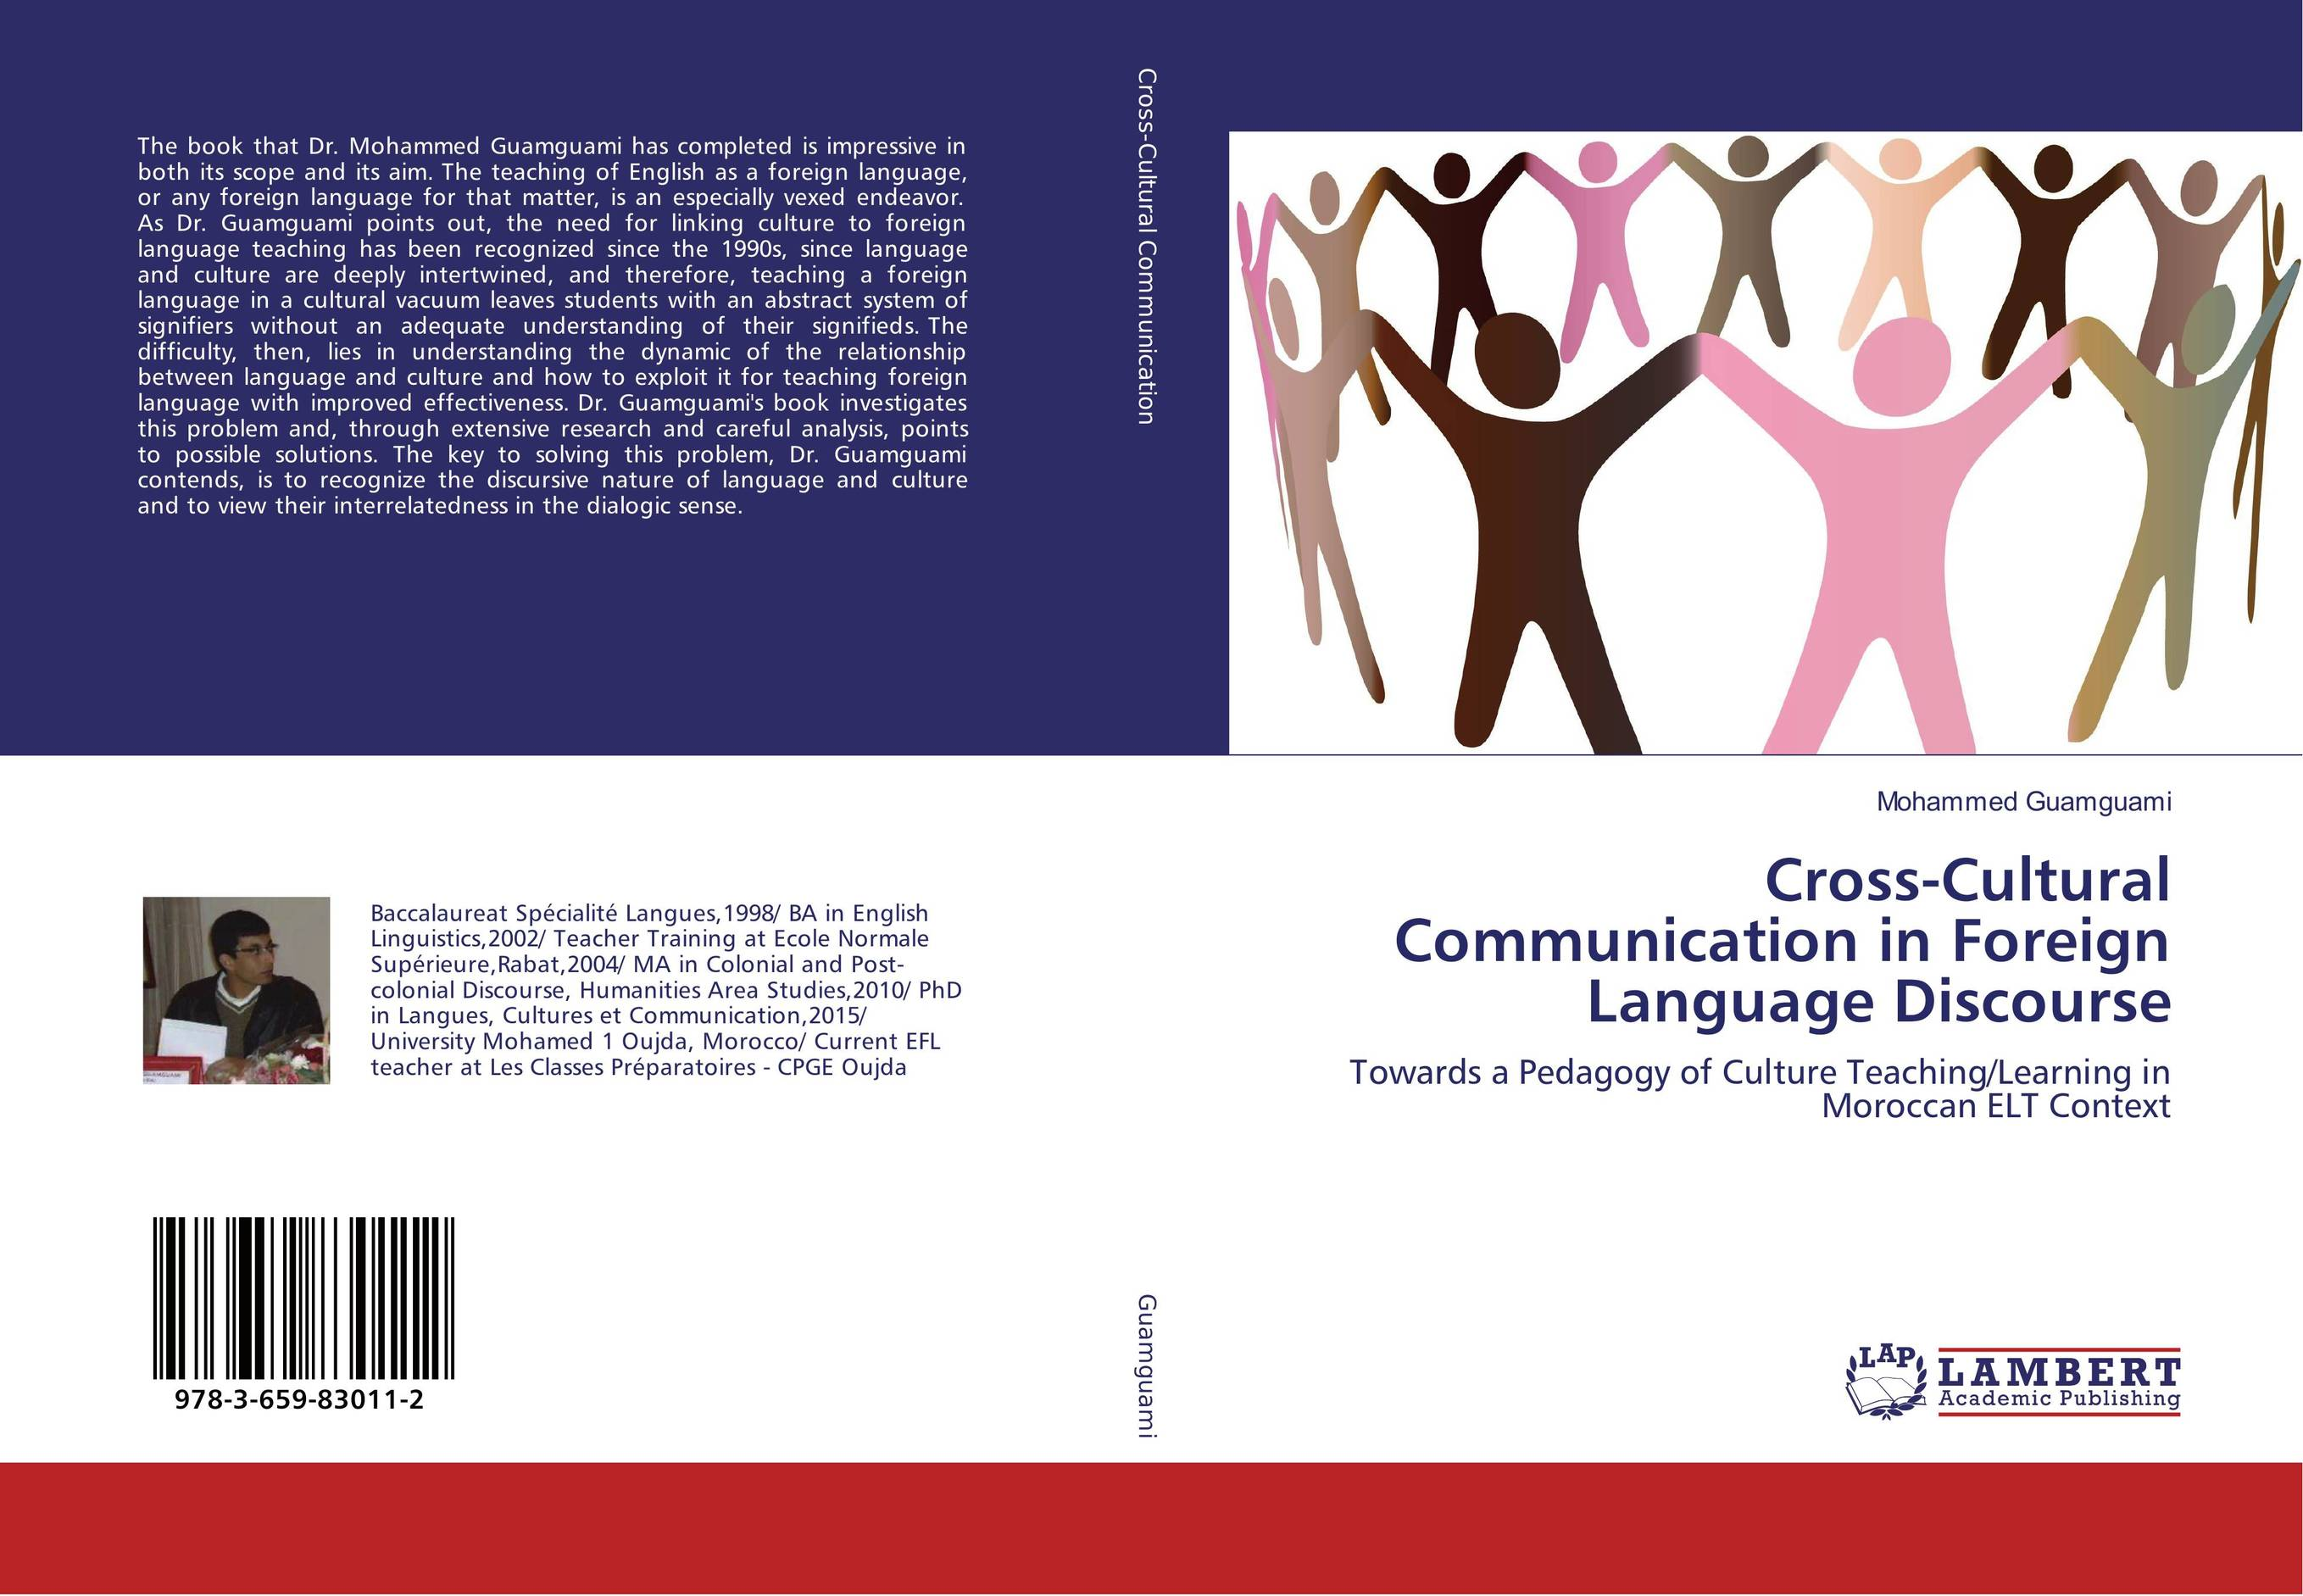 Cross-Cultural Communication in Foreign Language Discourse a cross cultural view of communication objectives in chinese schools